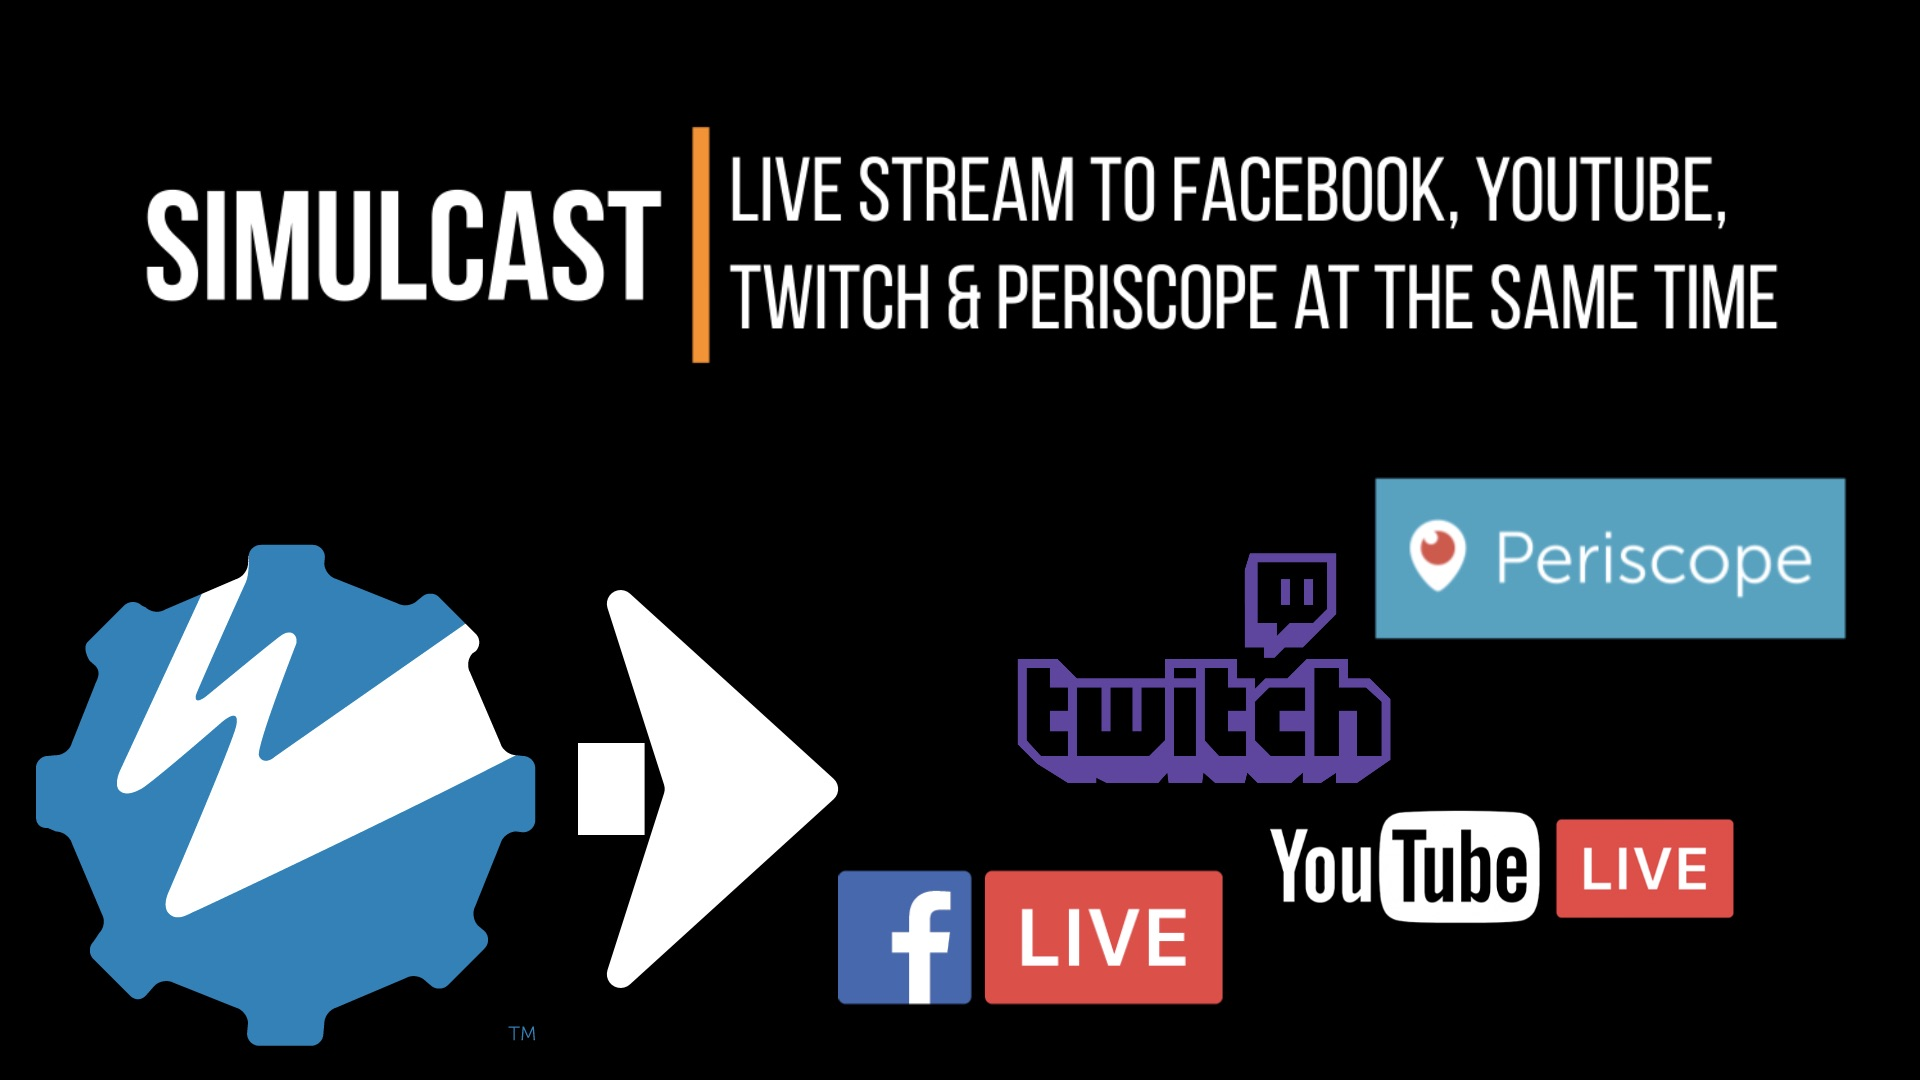 Live Stream to Facebook, YouTube, Twitch, and Periscope